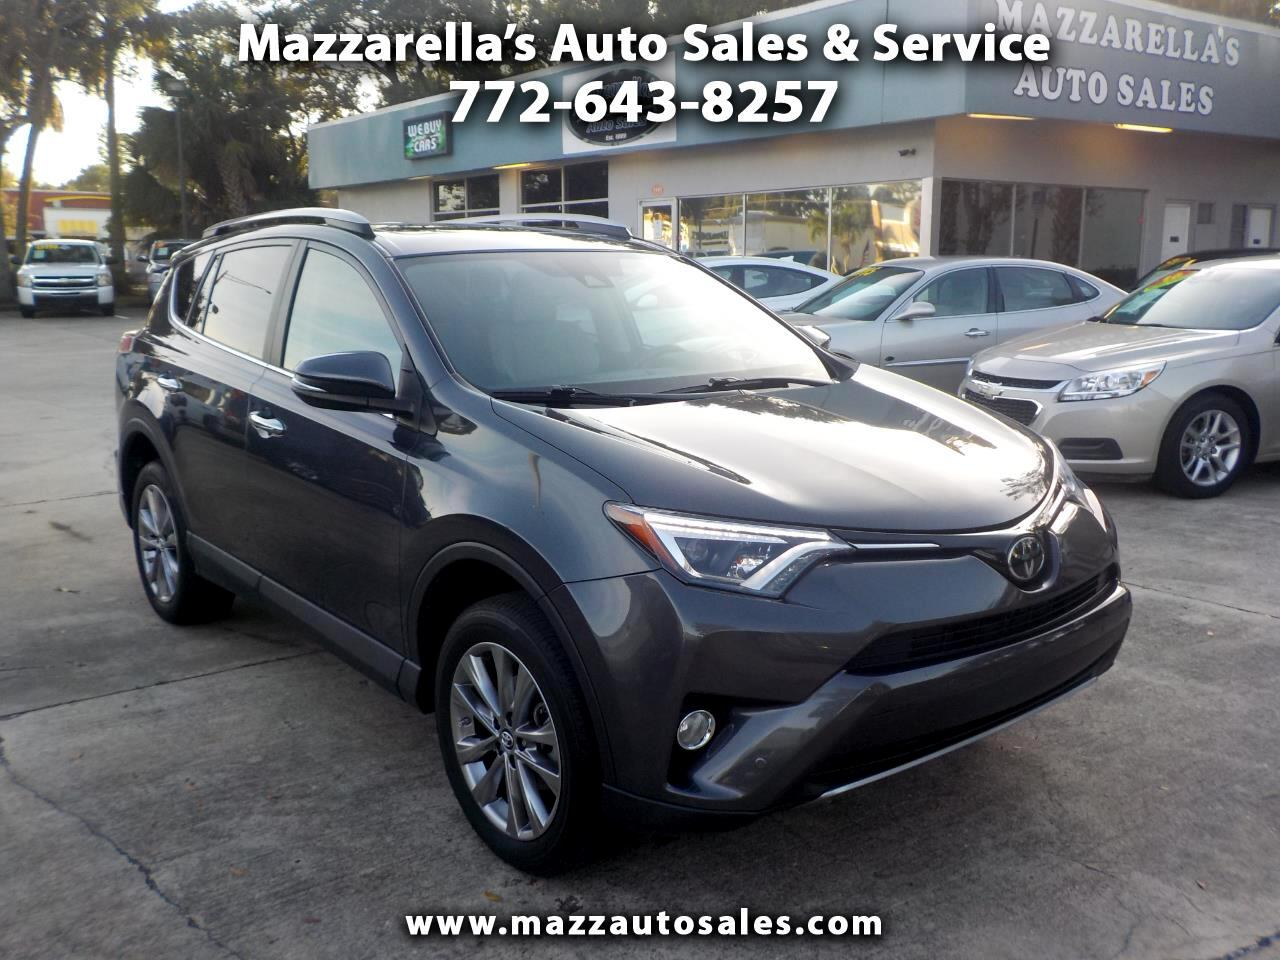 2017 Toyota RAV4 Limited FWD (Natl)